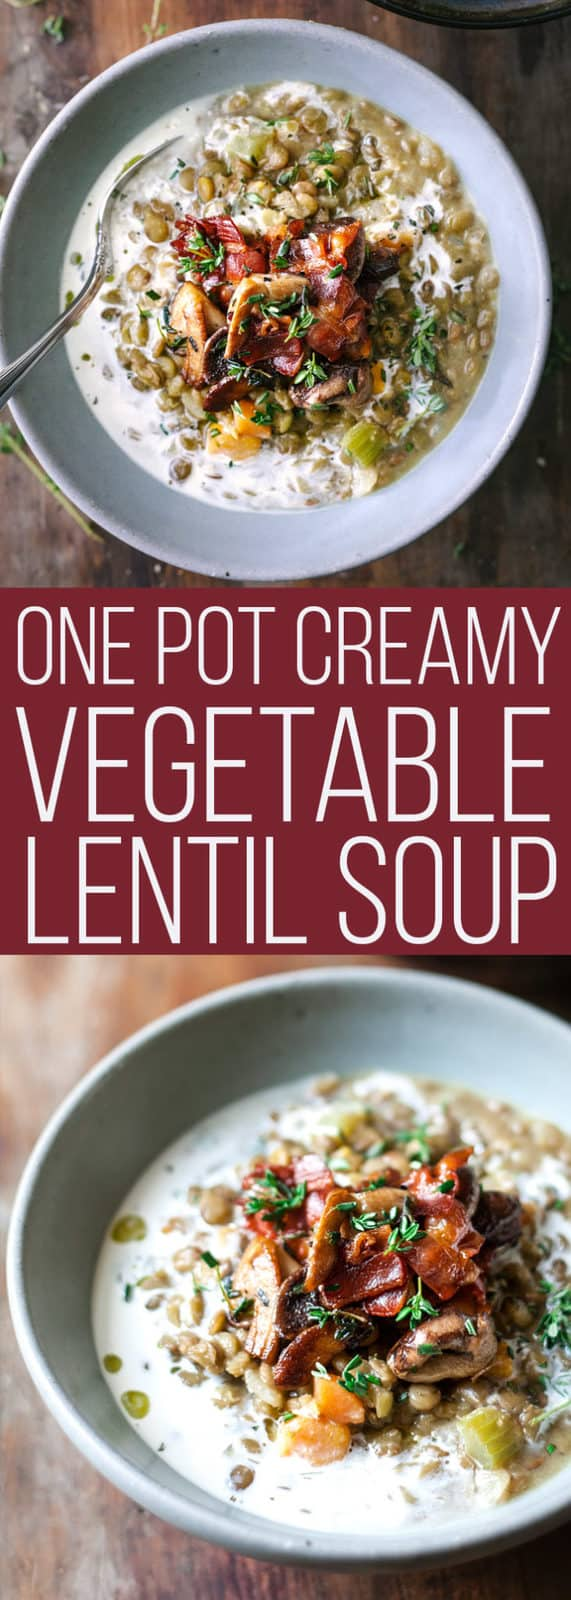 Creamy Vegetable Lentil Stew. One Pan, 20 minutes,  and perfect for freezing.  #soup #vegetables #onepot